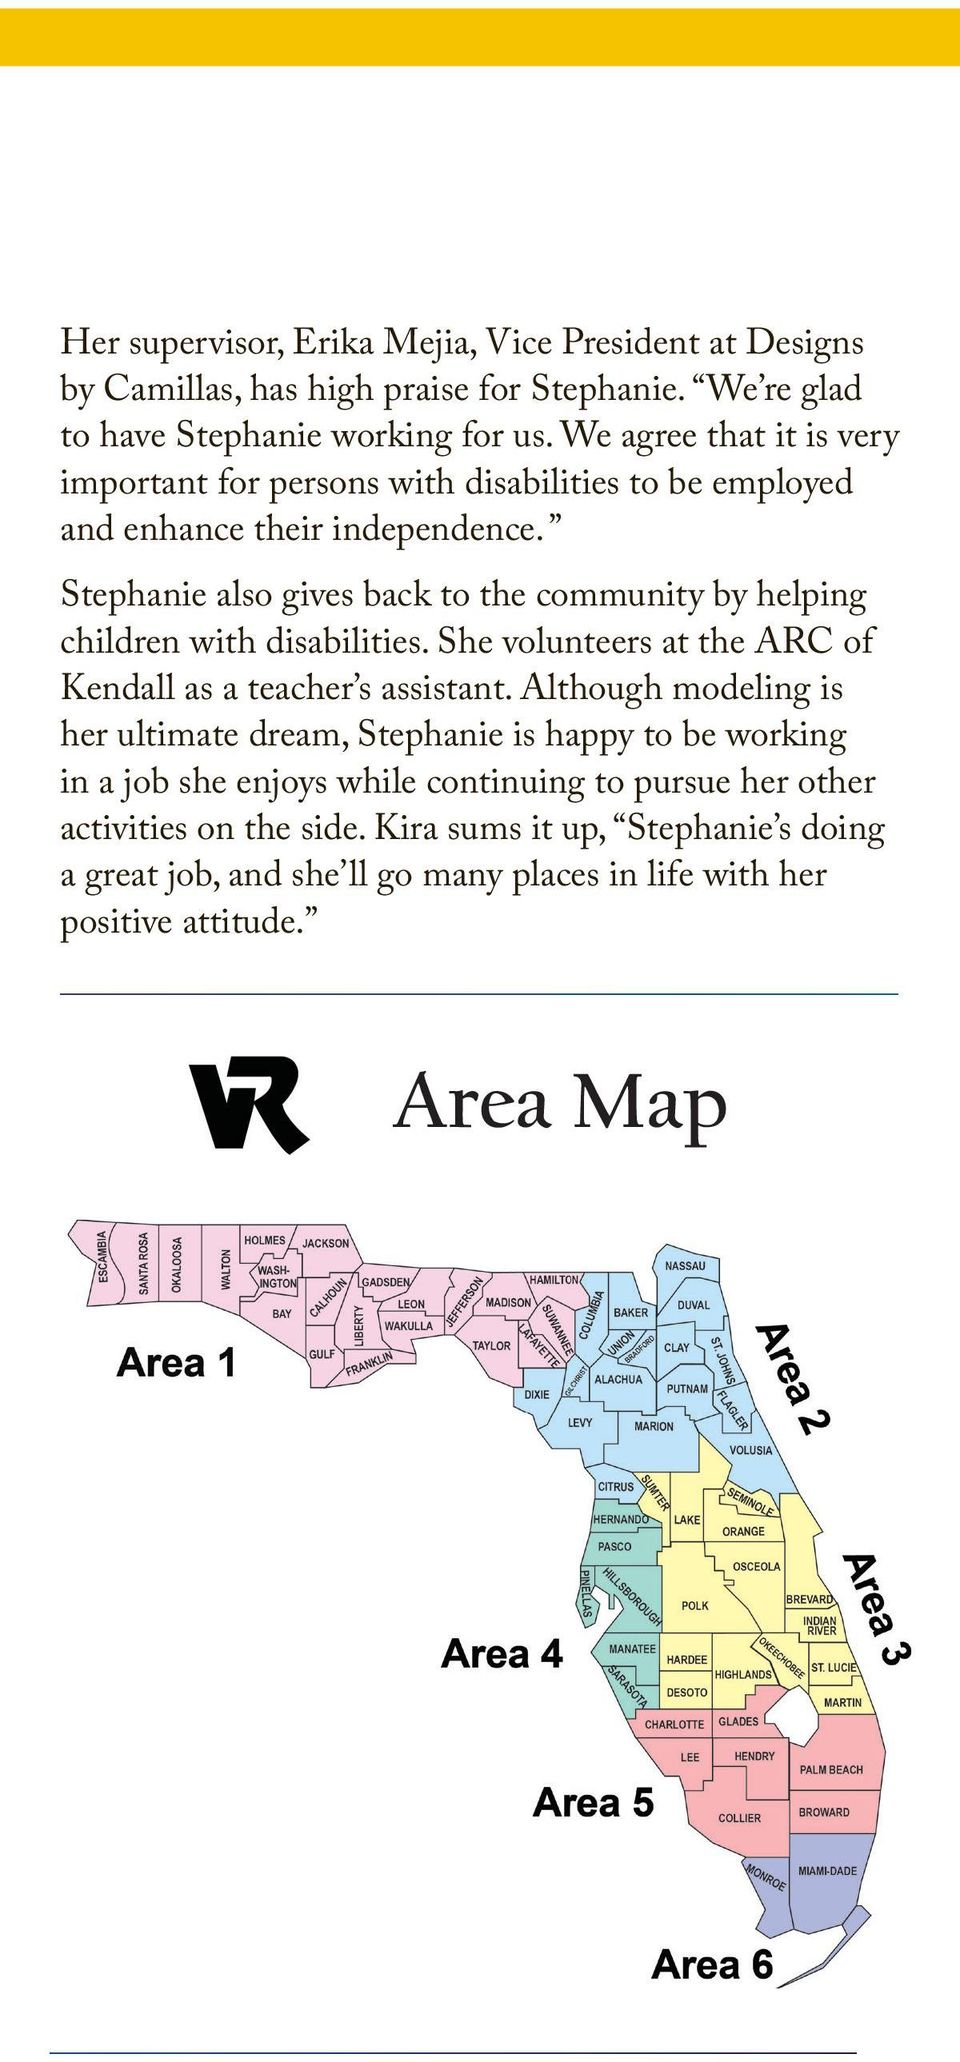 Stephanie also gives back to the community by helping children with disabilities. She volunteers at the ARC of Kendall as a teacher s assistant.